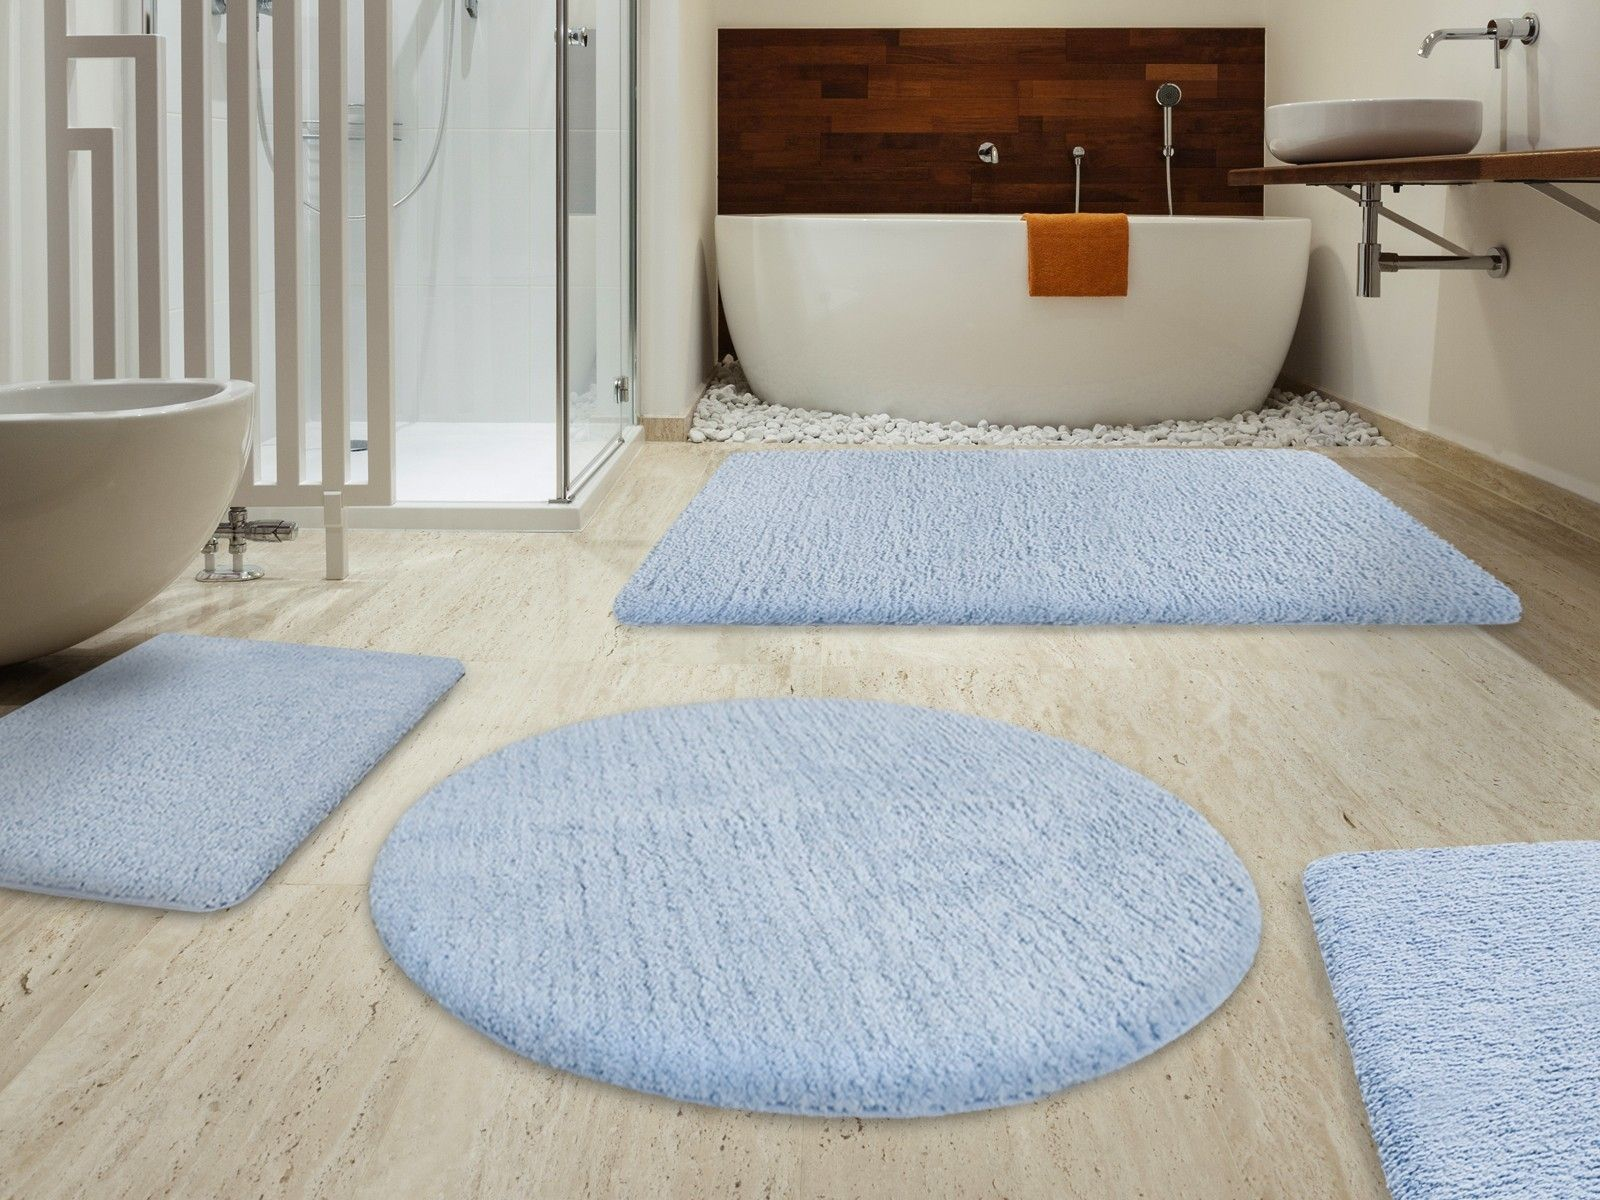 A Beautiful Light Blue Modern Bath Rugs Sets